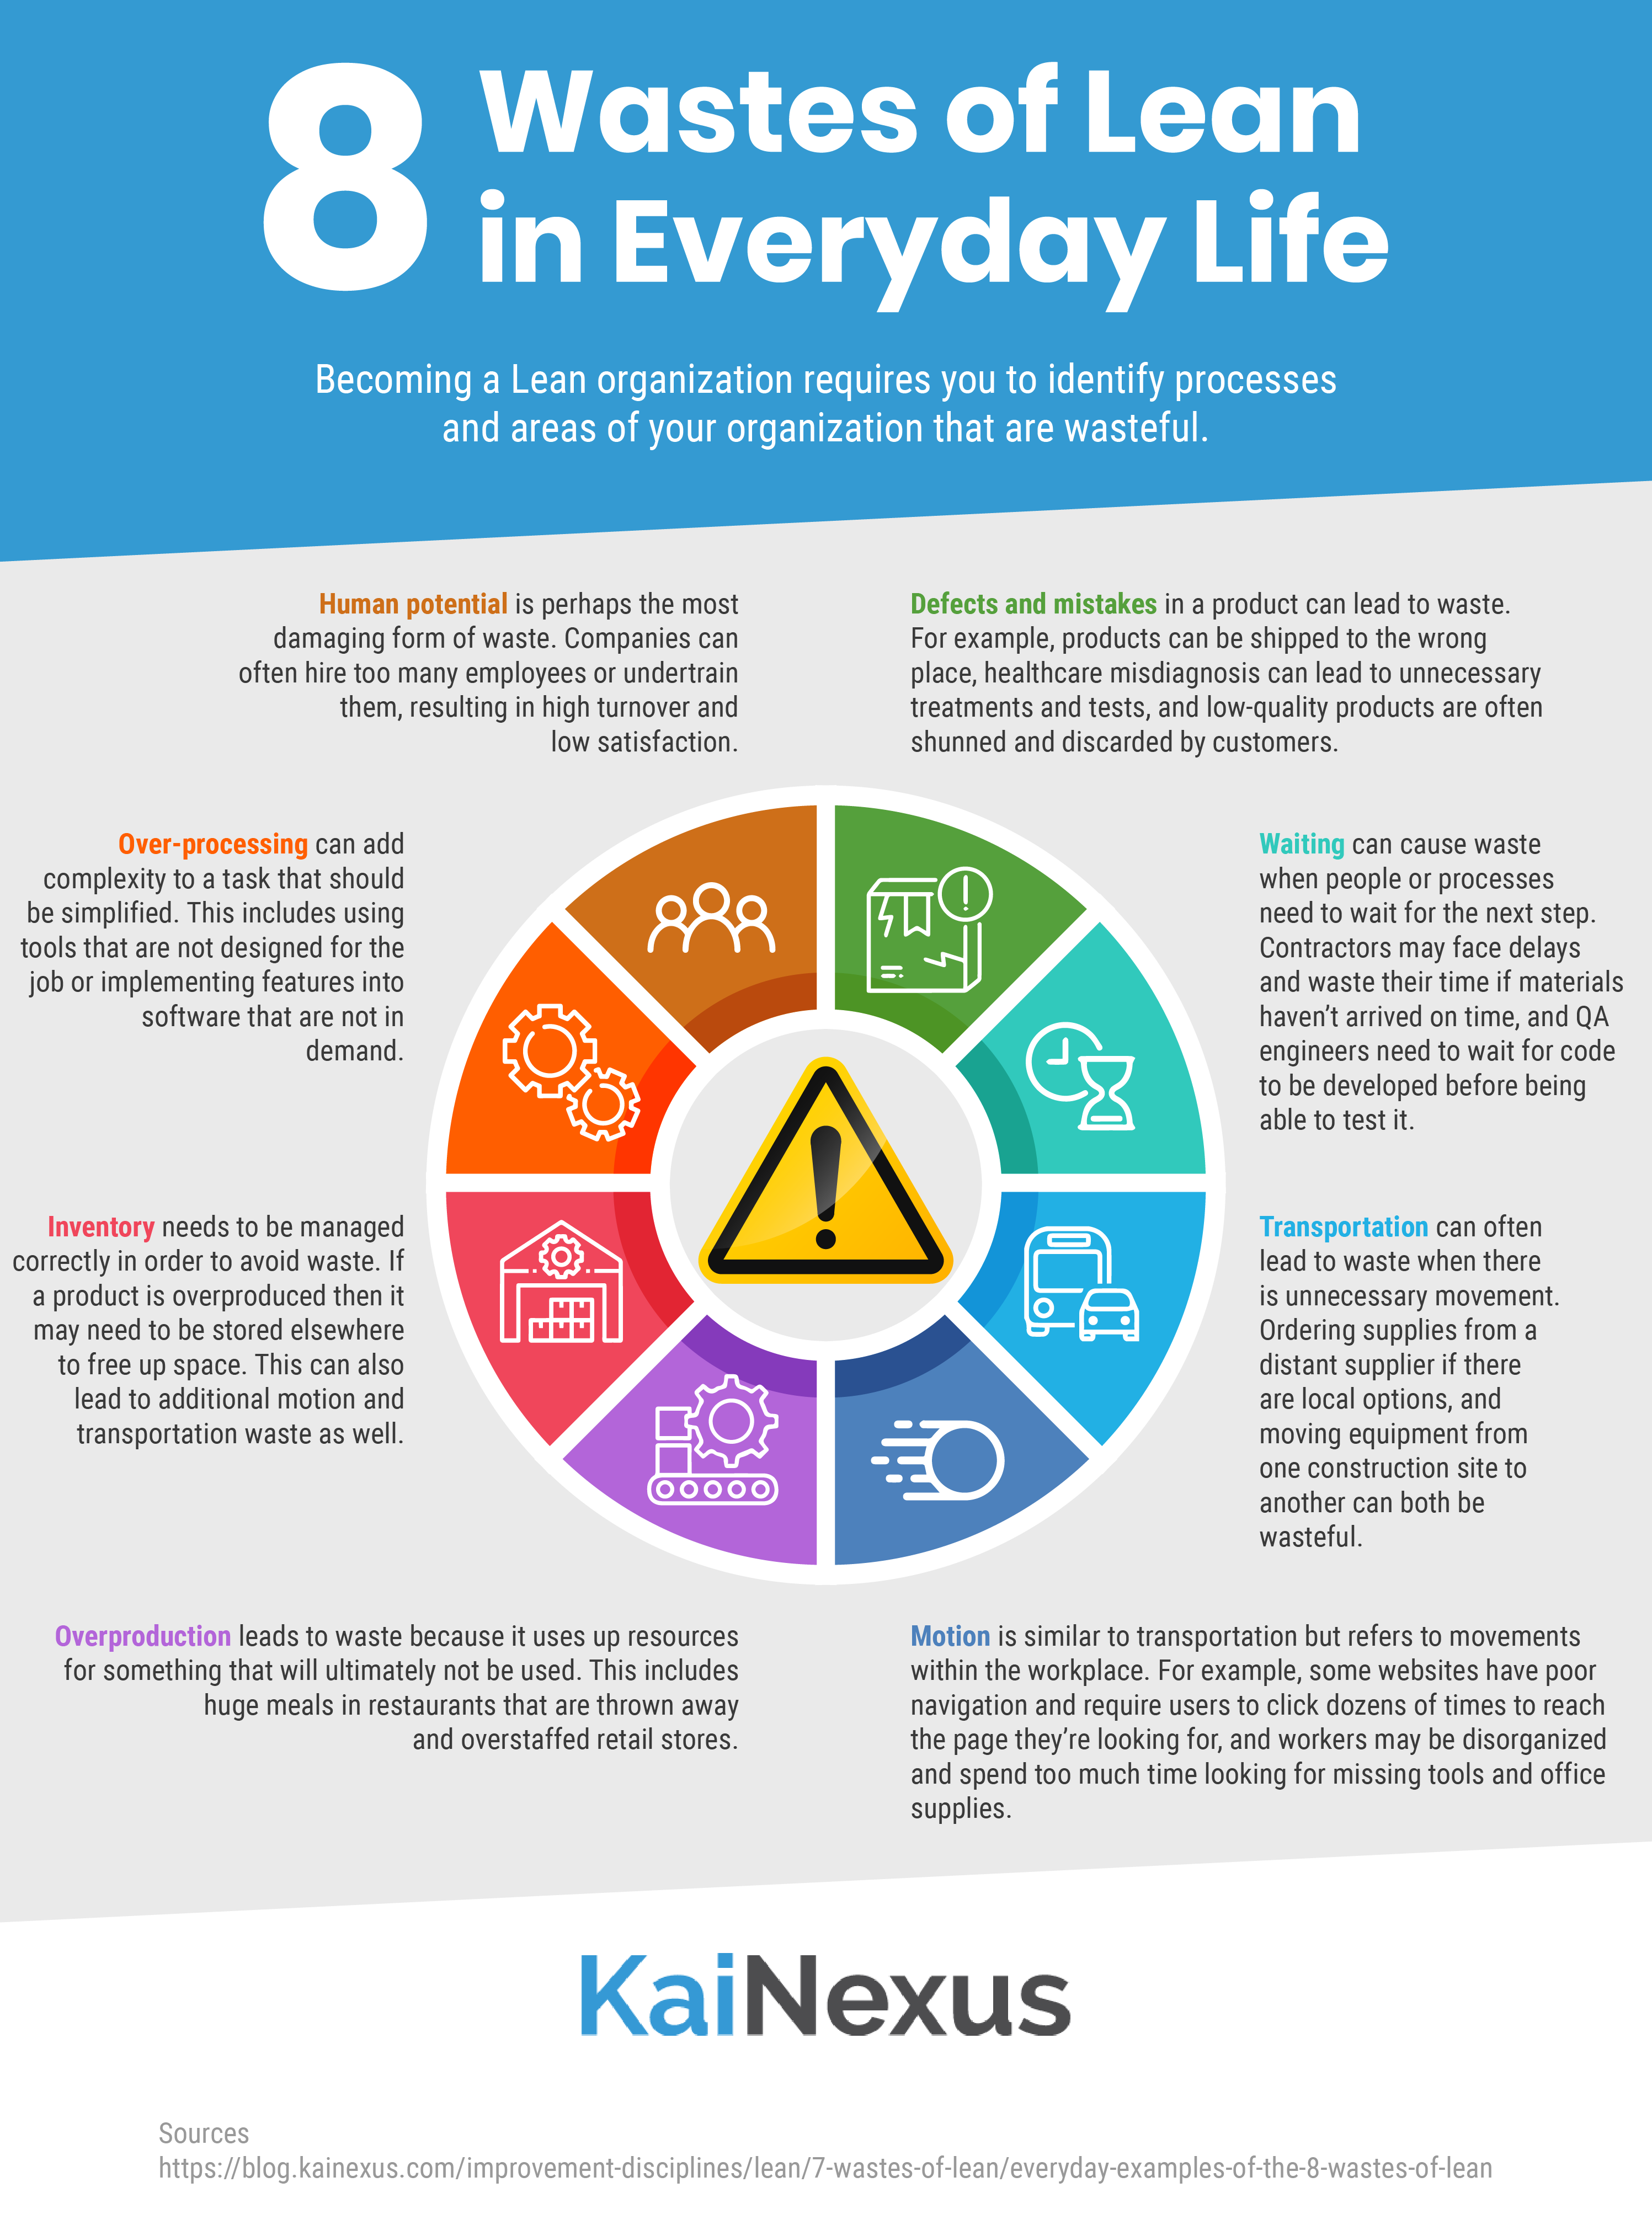 8 wastes of Lean infographic